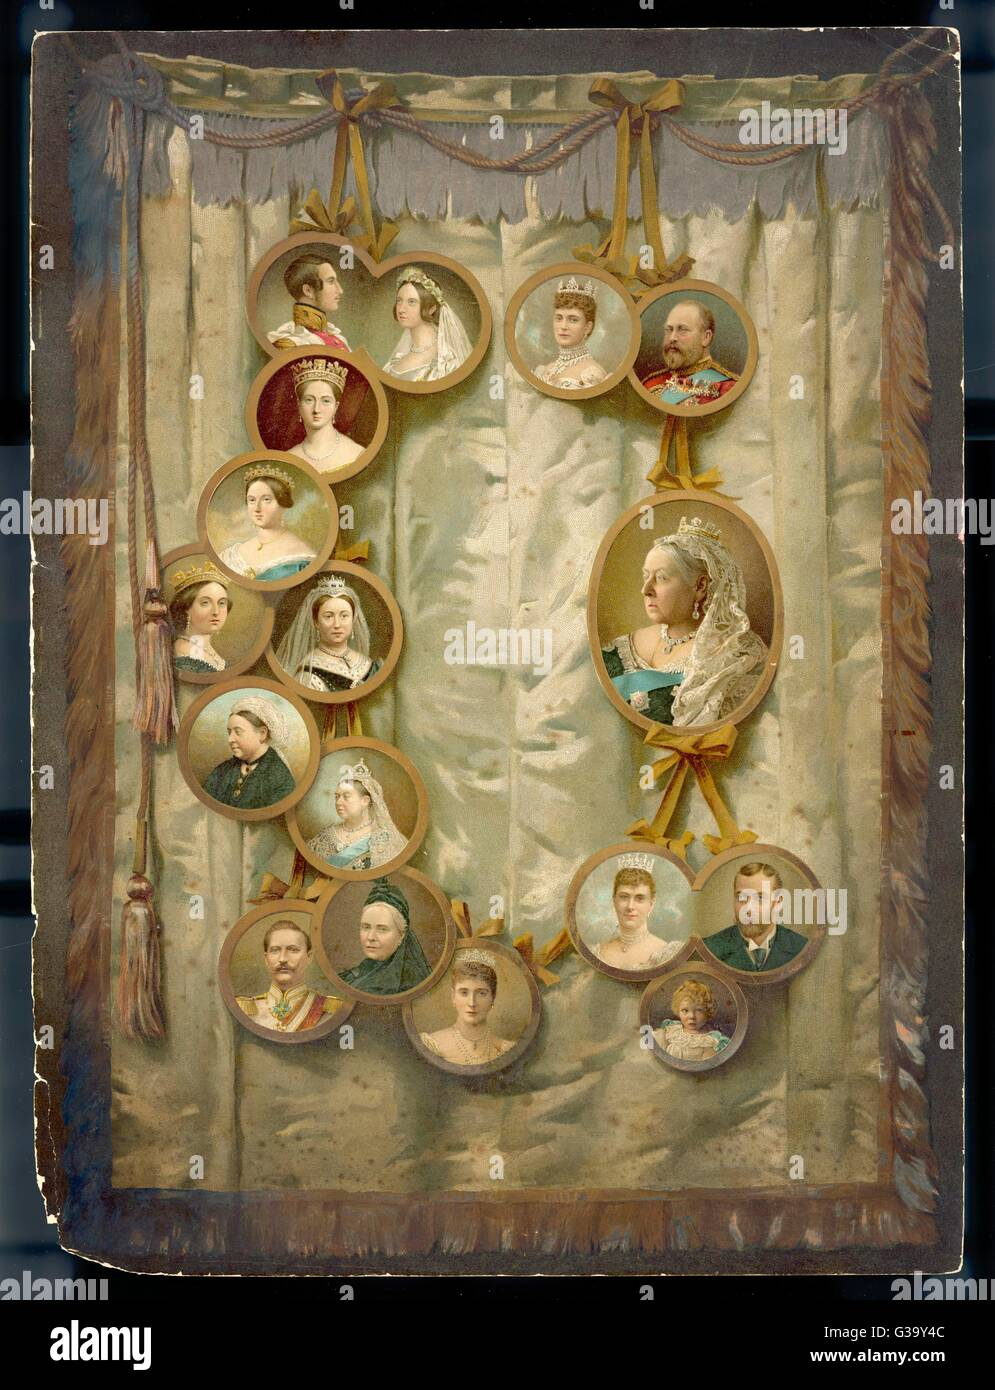 An array of royal portraits  to commemorate Victoria's  Diamond Jubilee        Date: 1897 - Stock Image